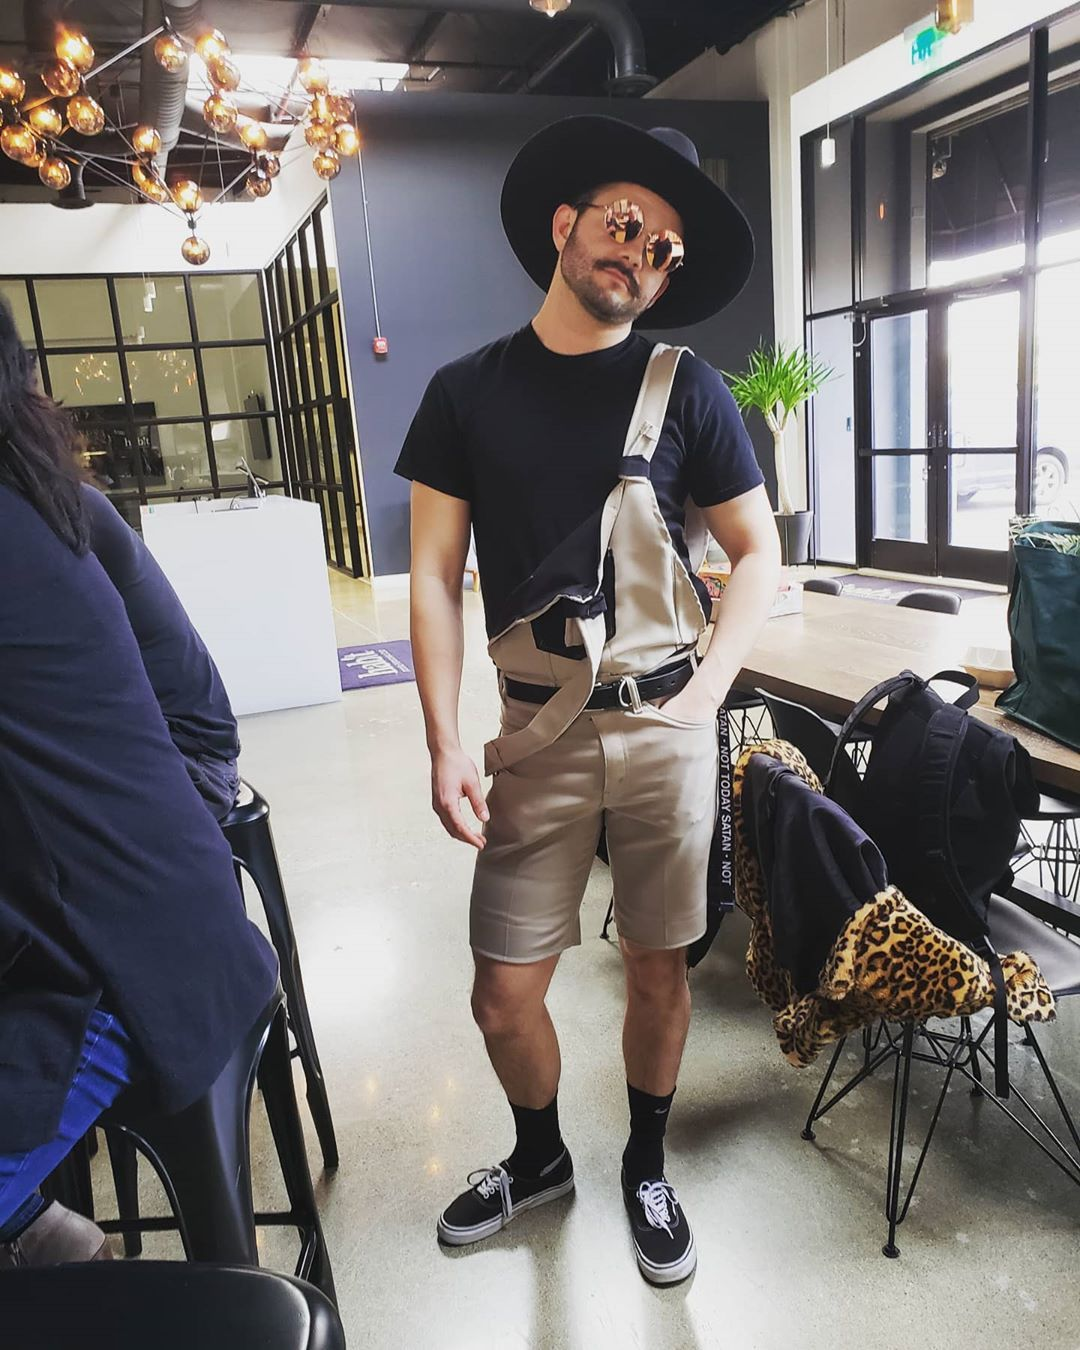 internet find #overalls#dungarees#shortalls#cute#cute guy#tshirt#hat#sunglasses#belt#one stap#strap down #hand in pocket #cool#cool look#hot#hot guy#sneakers#socks#summer#summer look